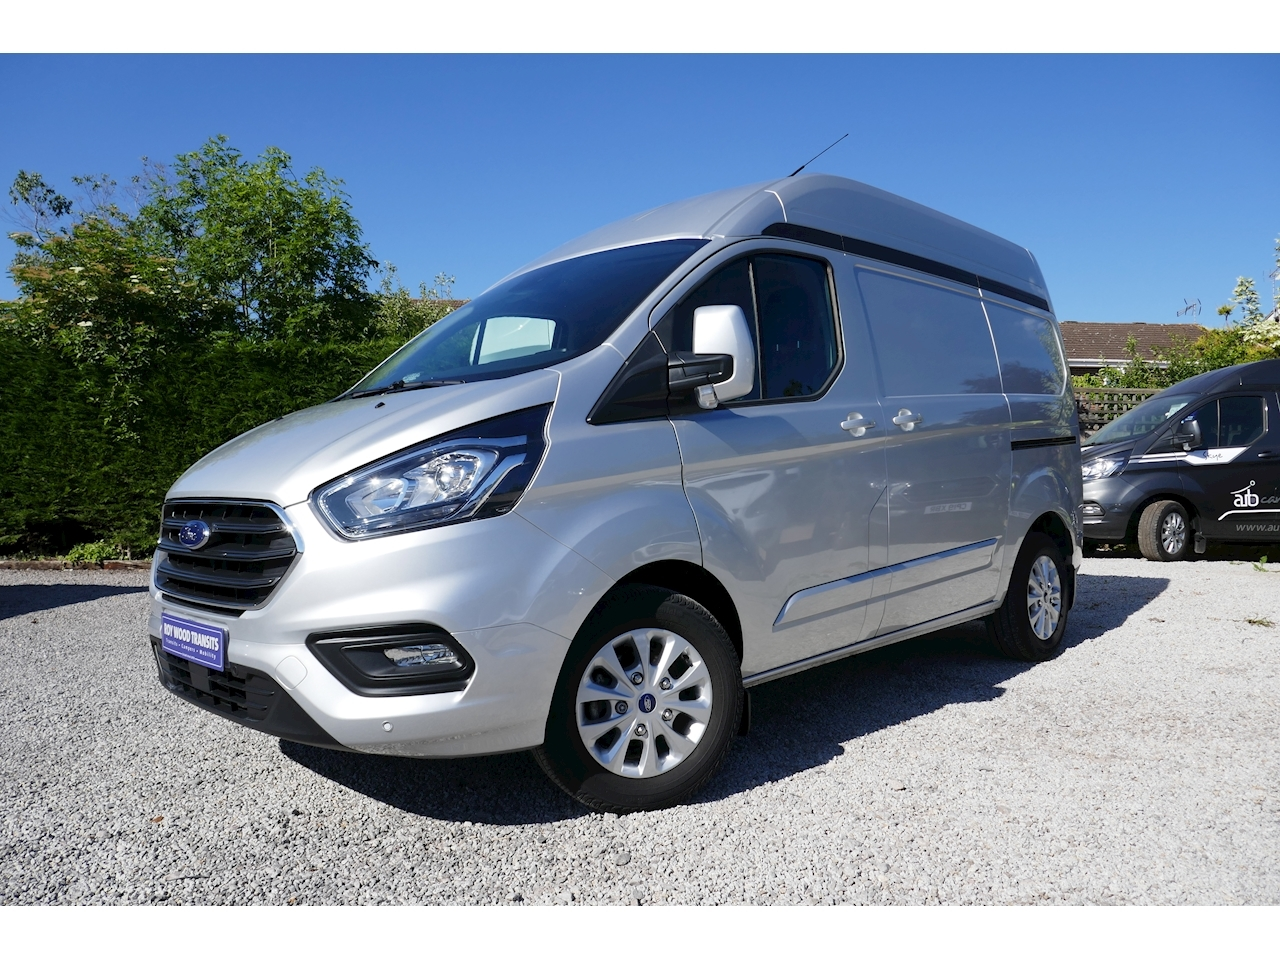 Used Ford Transit Custom 300 Limited L1 H2 130ps Euro 6 Diesel Van Only 3k Miles U9158 For Sale